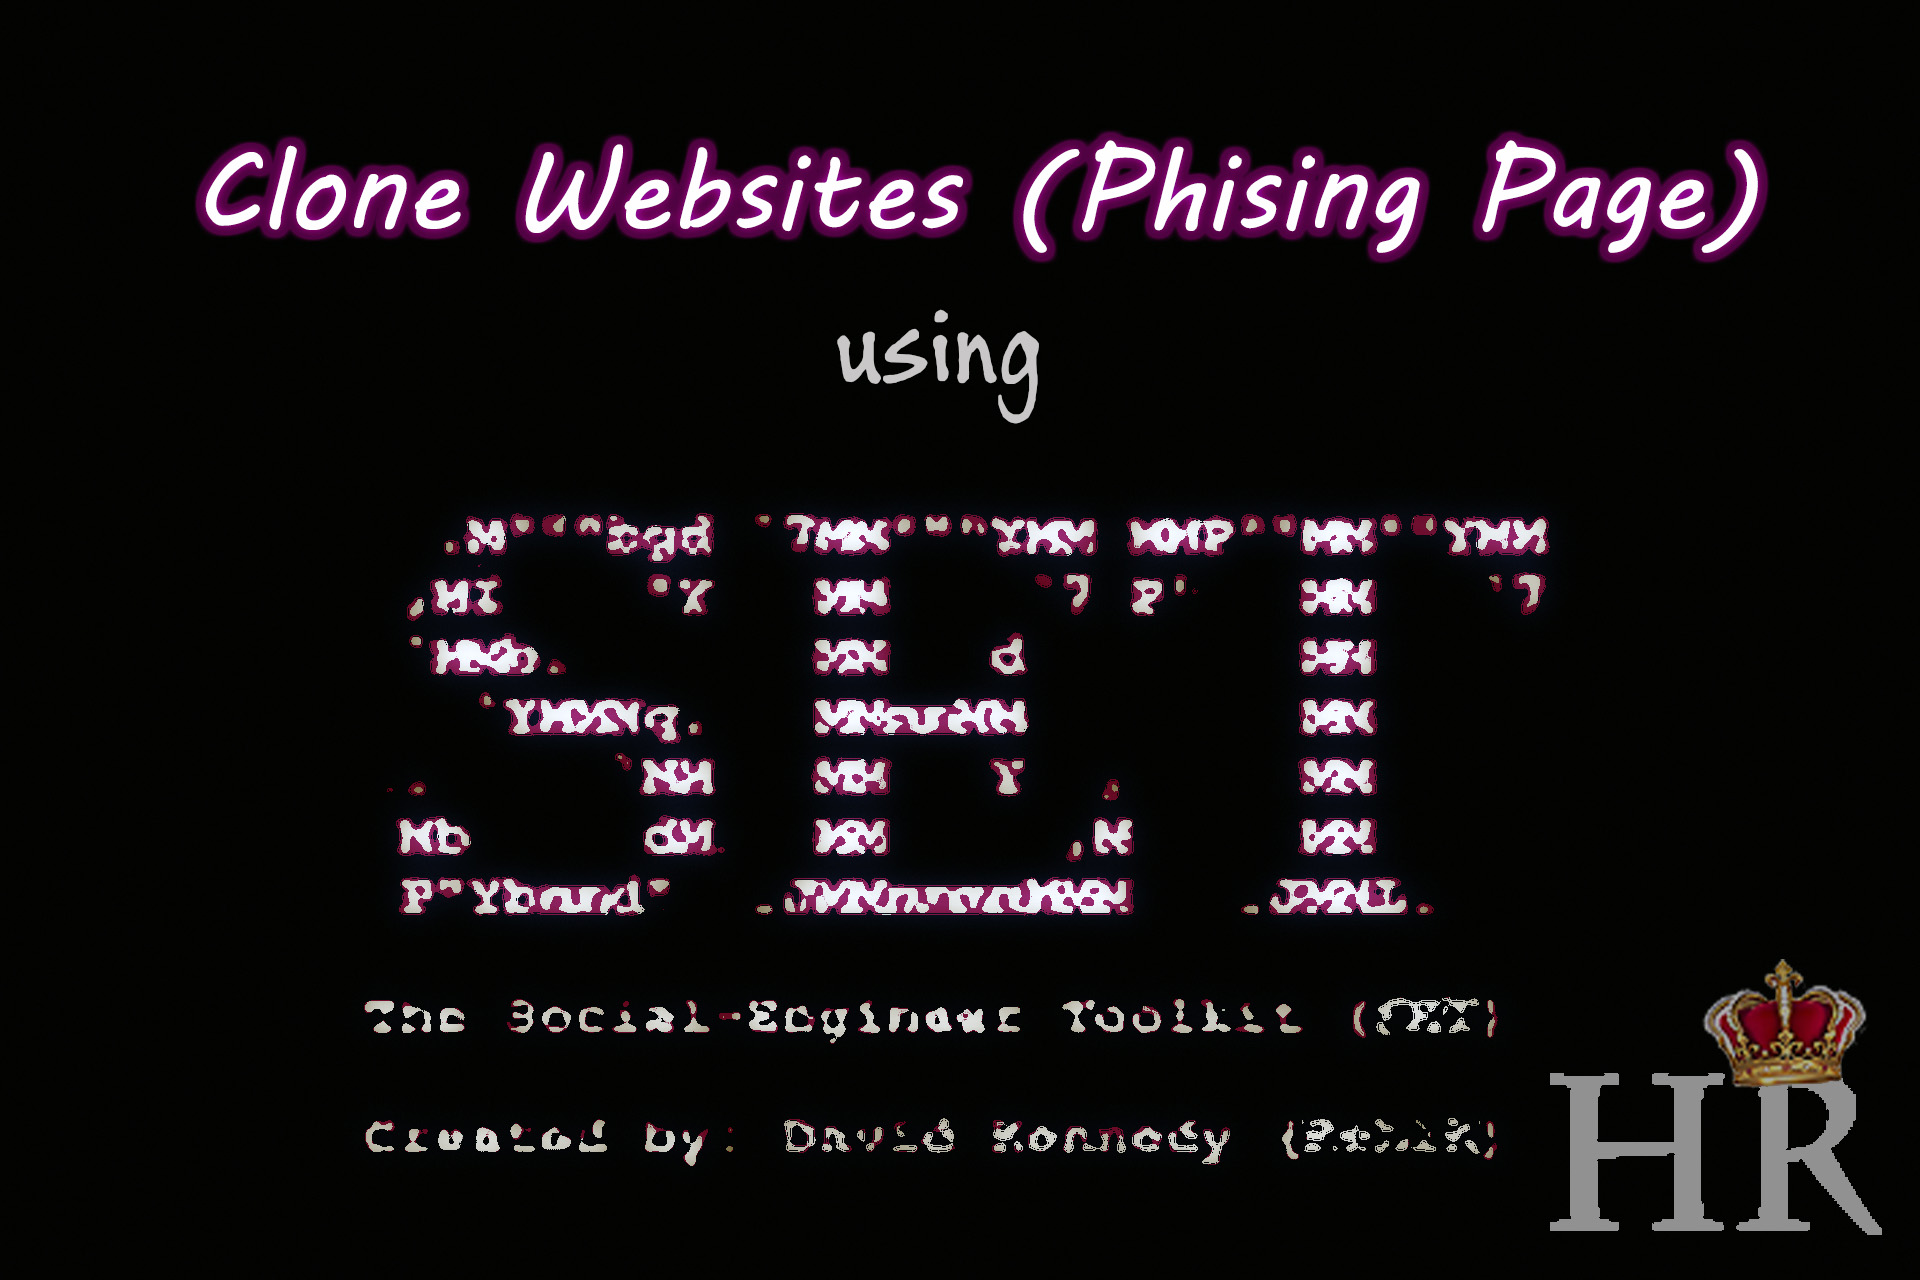 How To Clone Fake Websites make Phish page Using Setoolkit